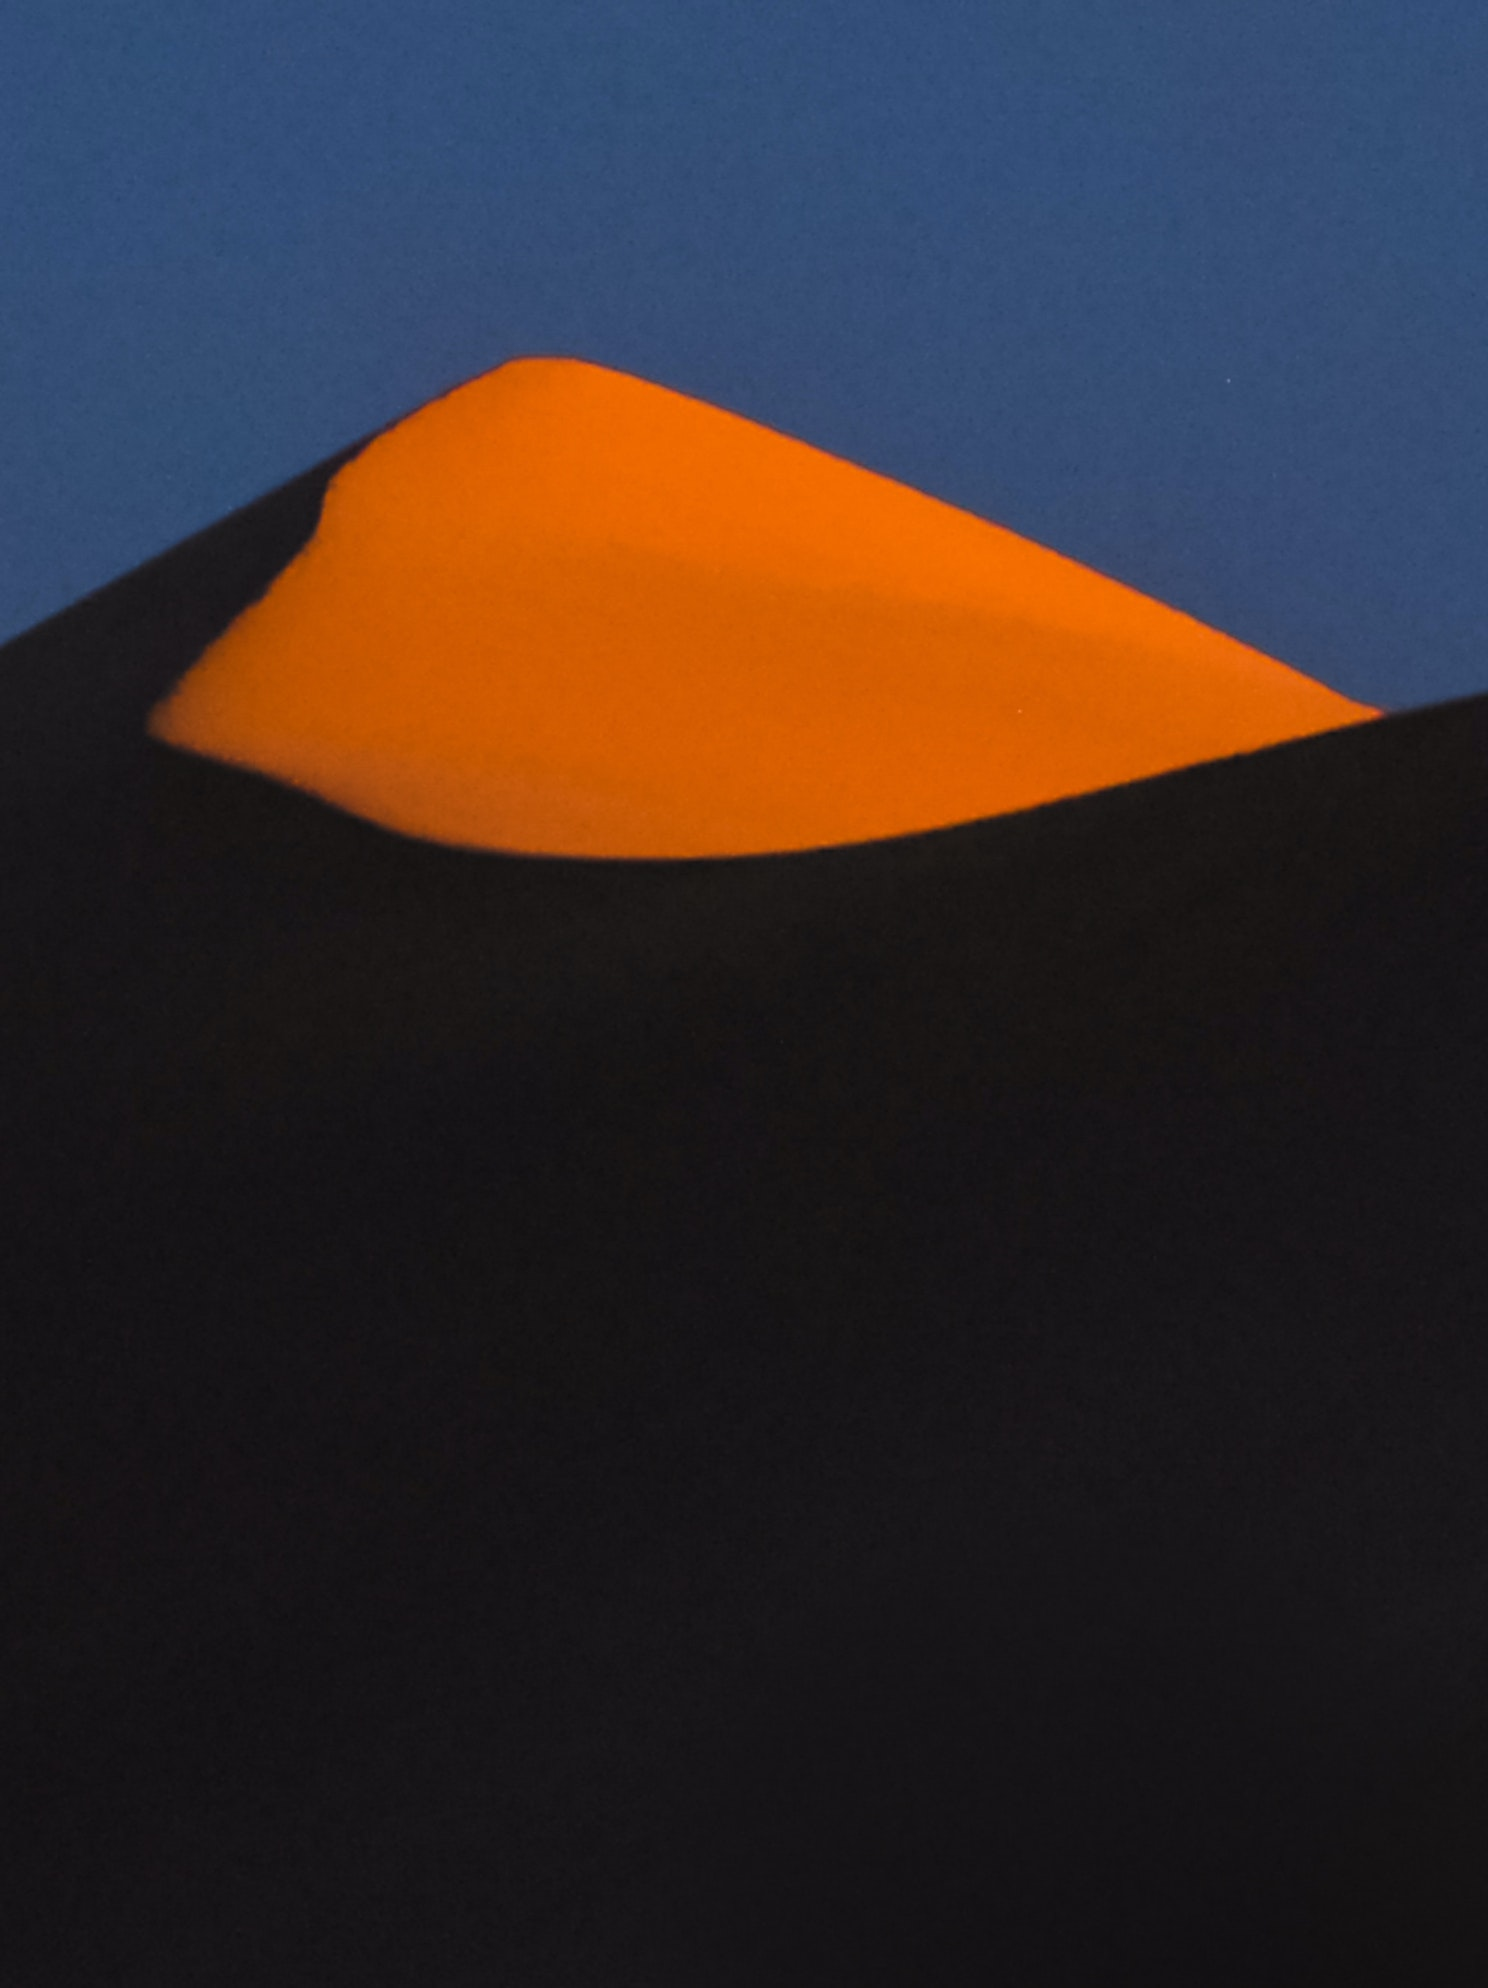 Mongolian landscape at sunset - Khongorin Els sand dunes in the Gobi desert